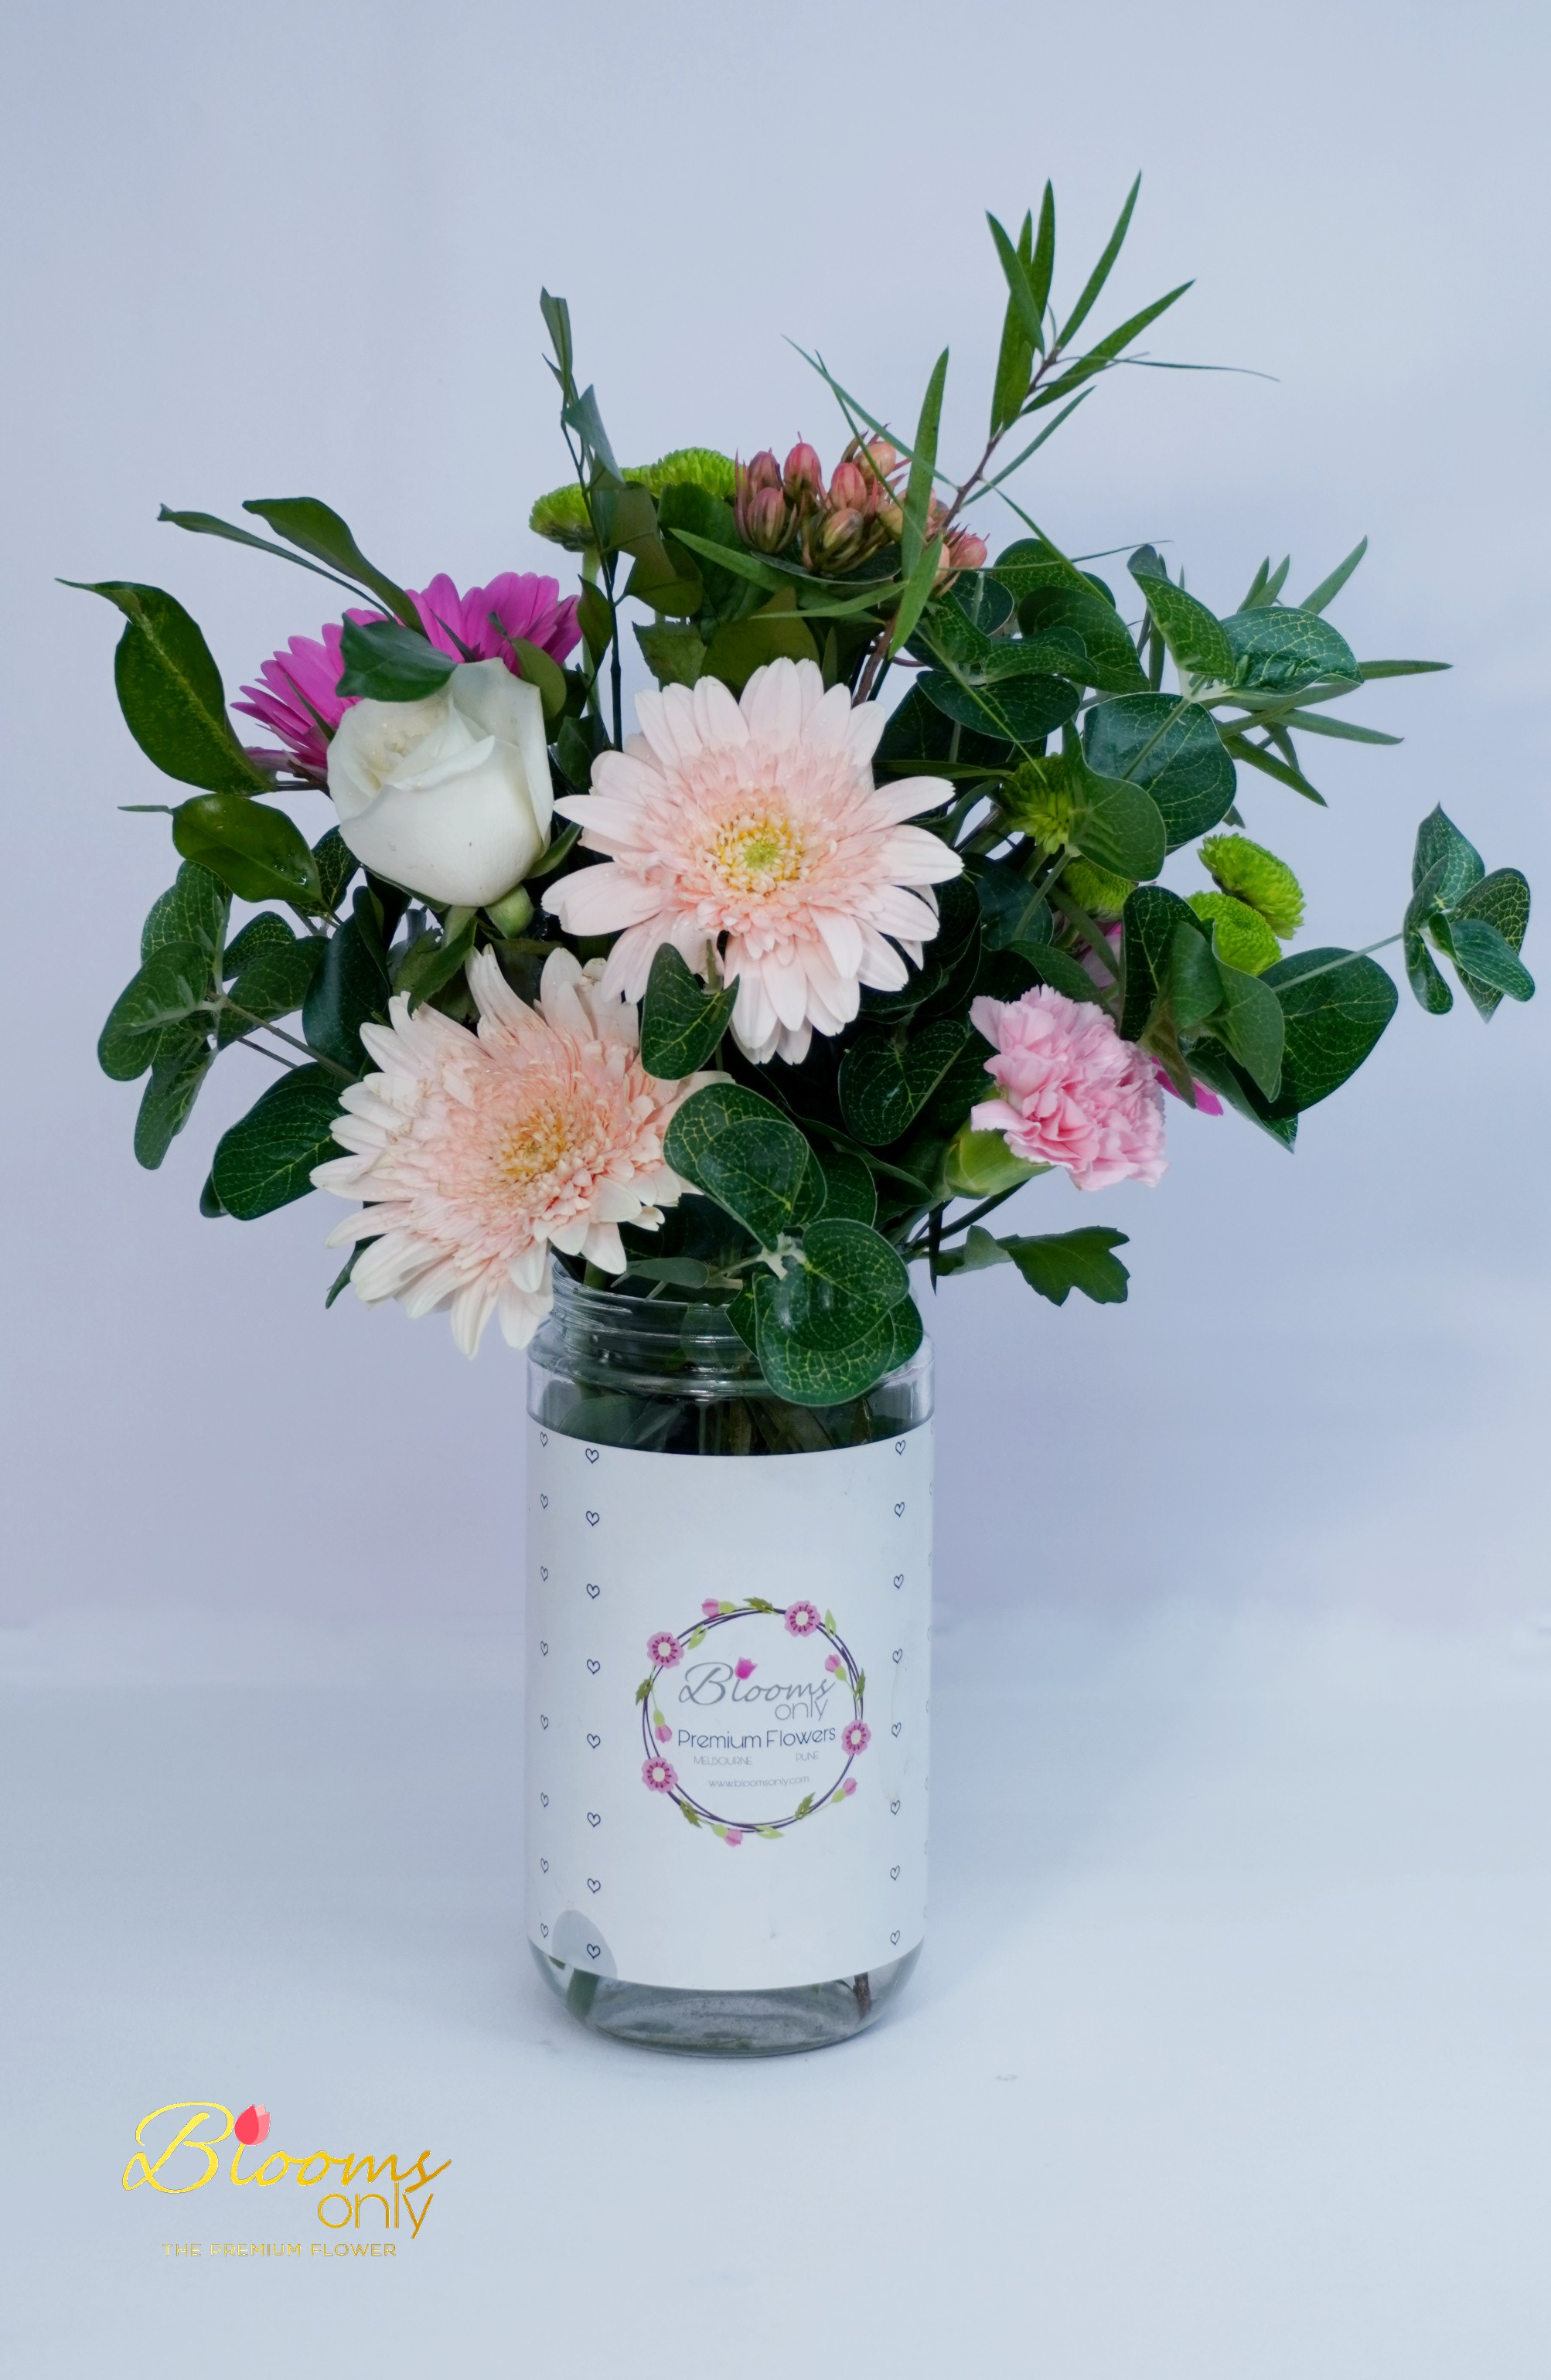 Mixed Flower Vase Bouquet with White Rose